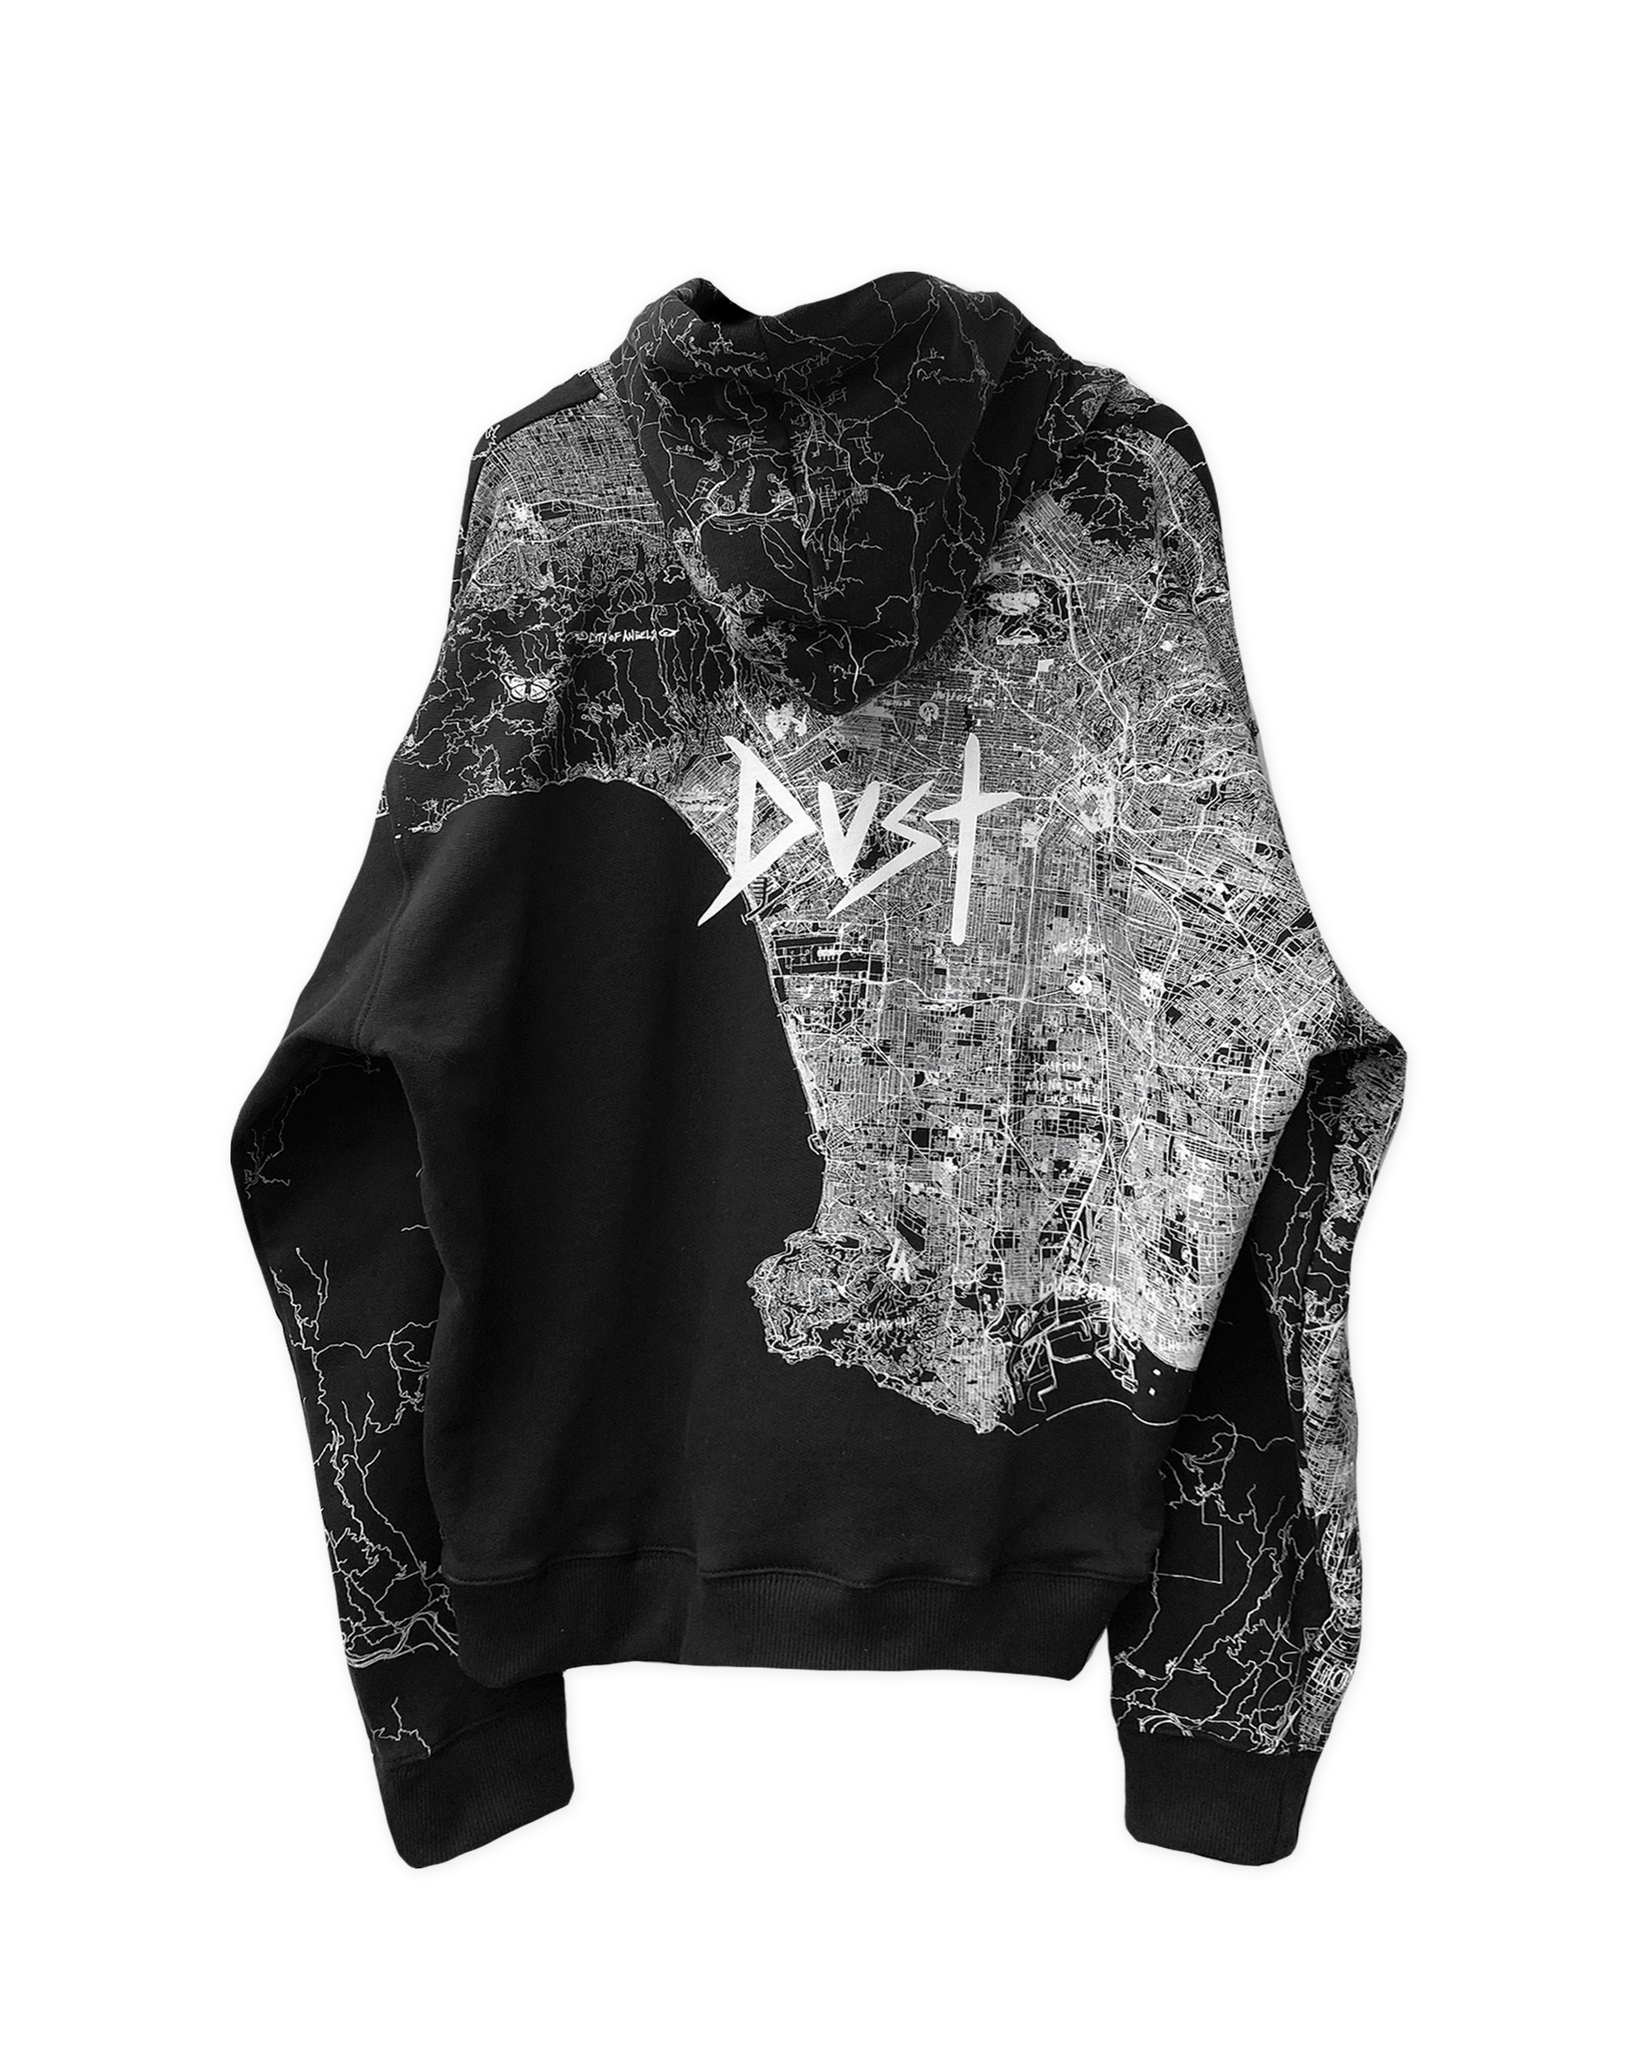 UN●BREAK●A●BLE LOS ANGELES BLACK HOODIE